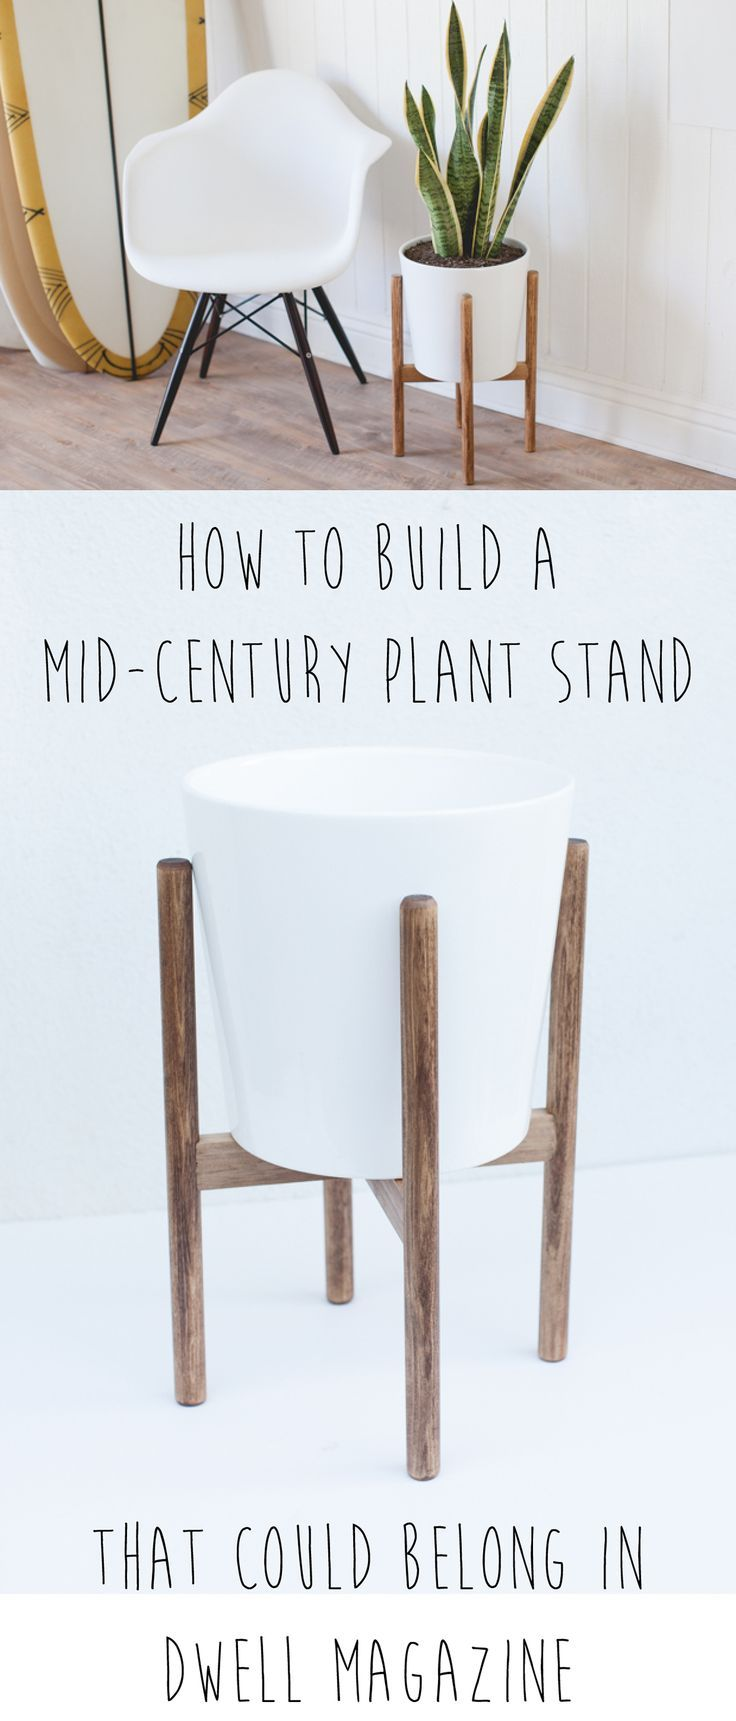 This would cost so much at the store, but it's so easy to make! DIY your very own mid-century plant stand: www.ehow.com/...